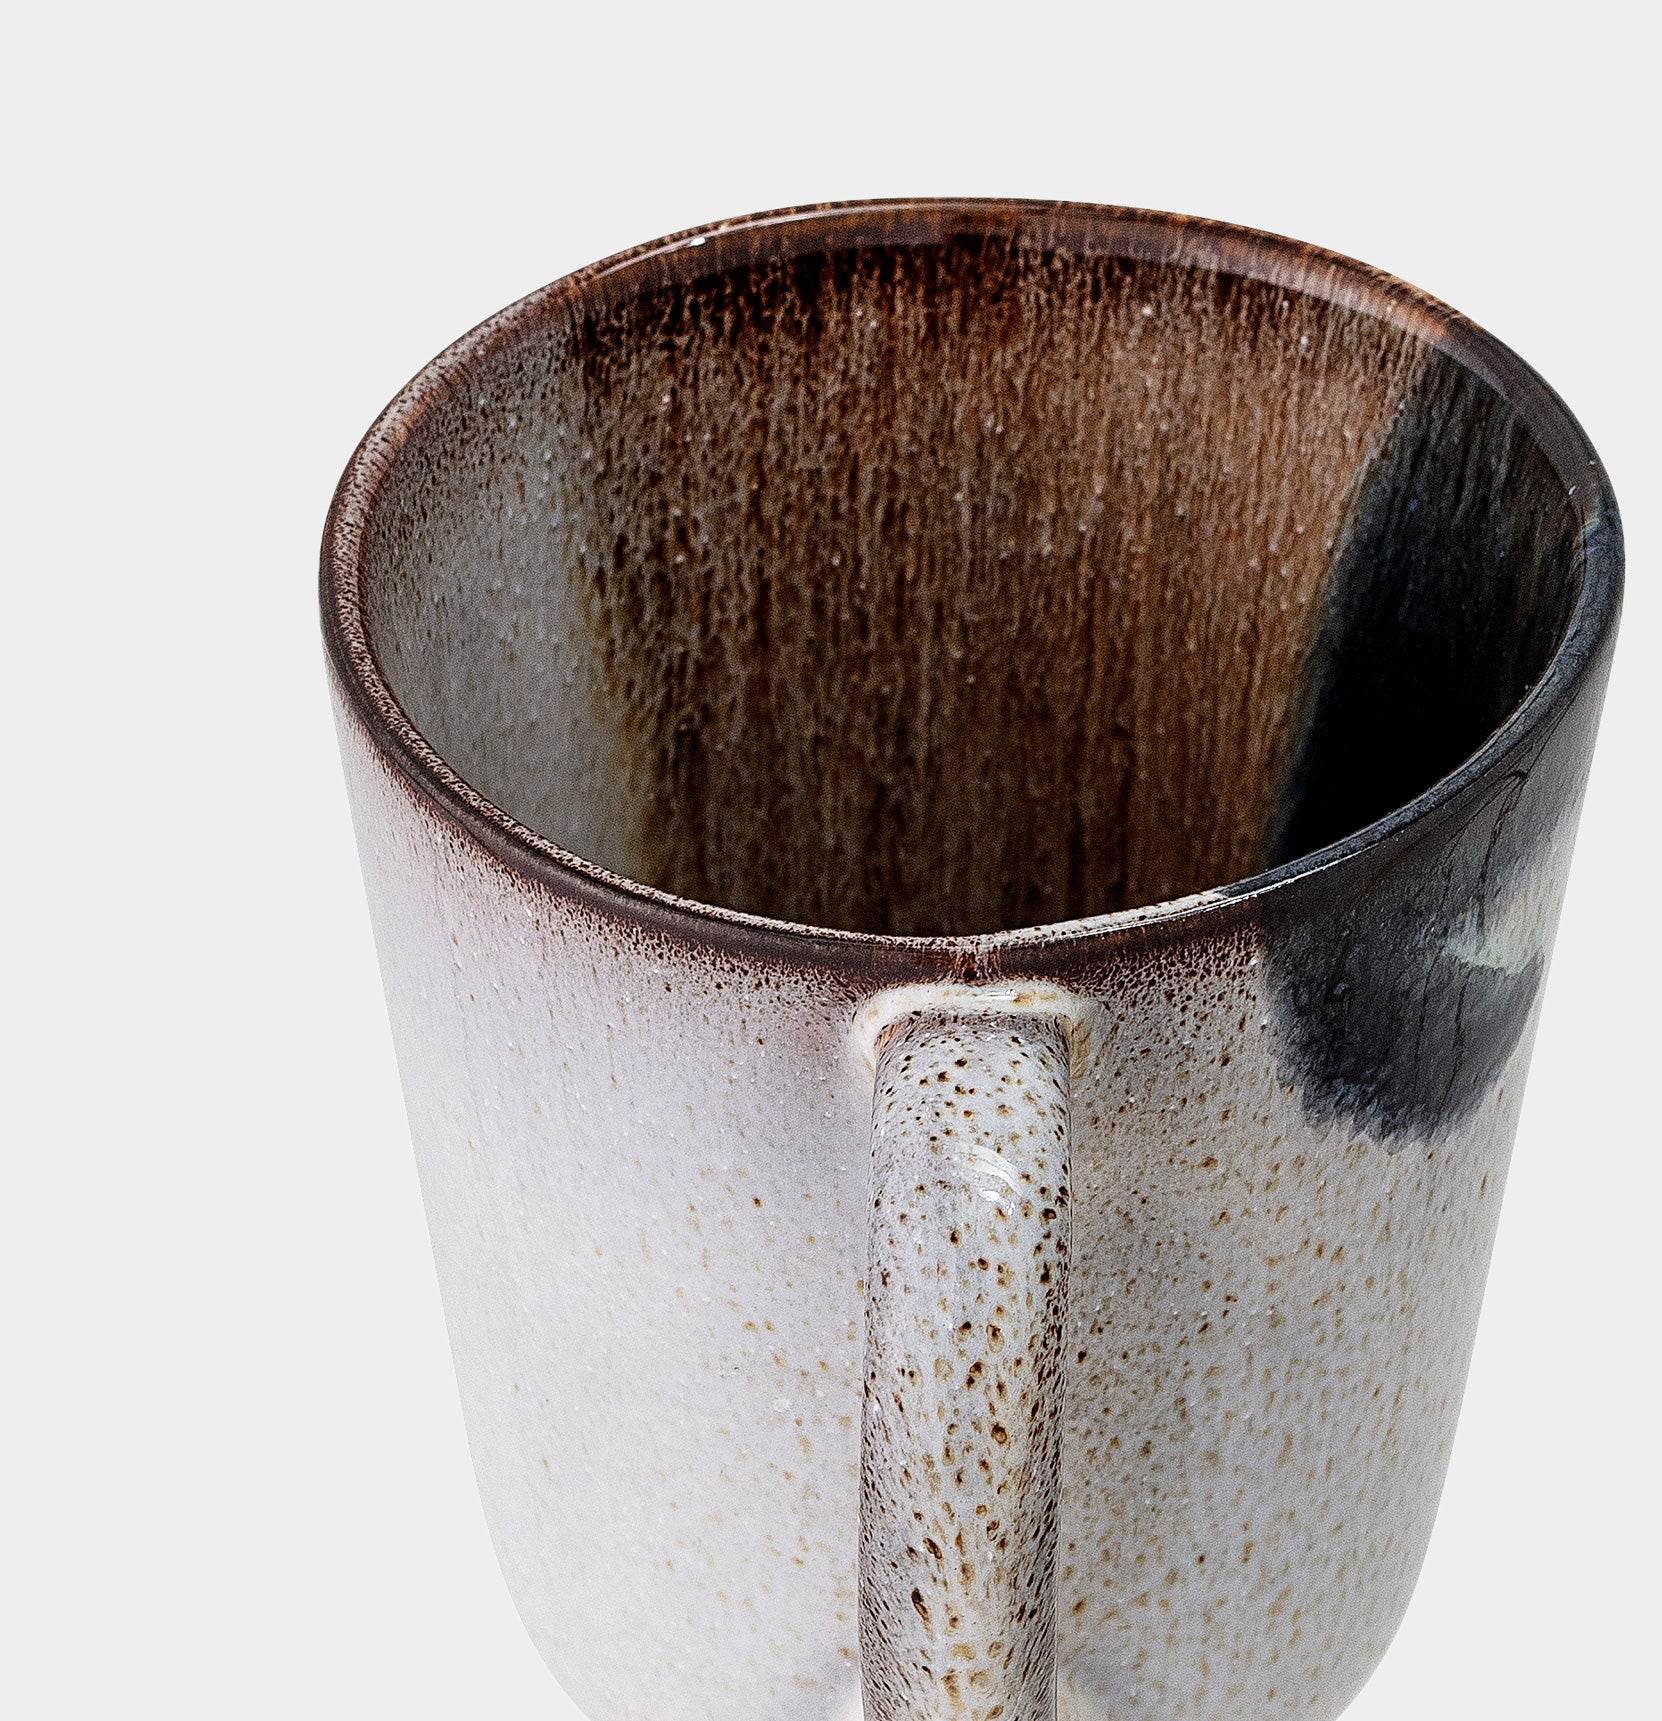 The Jules handmade natural glazed stoneware mug